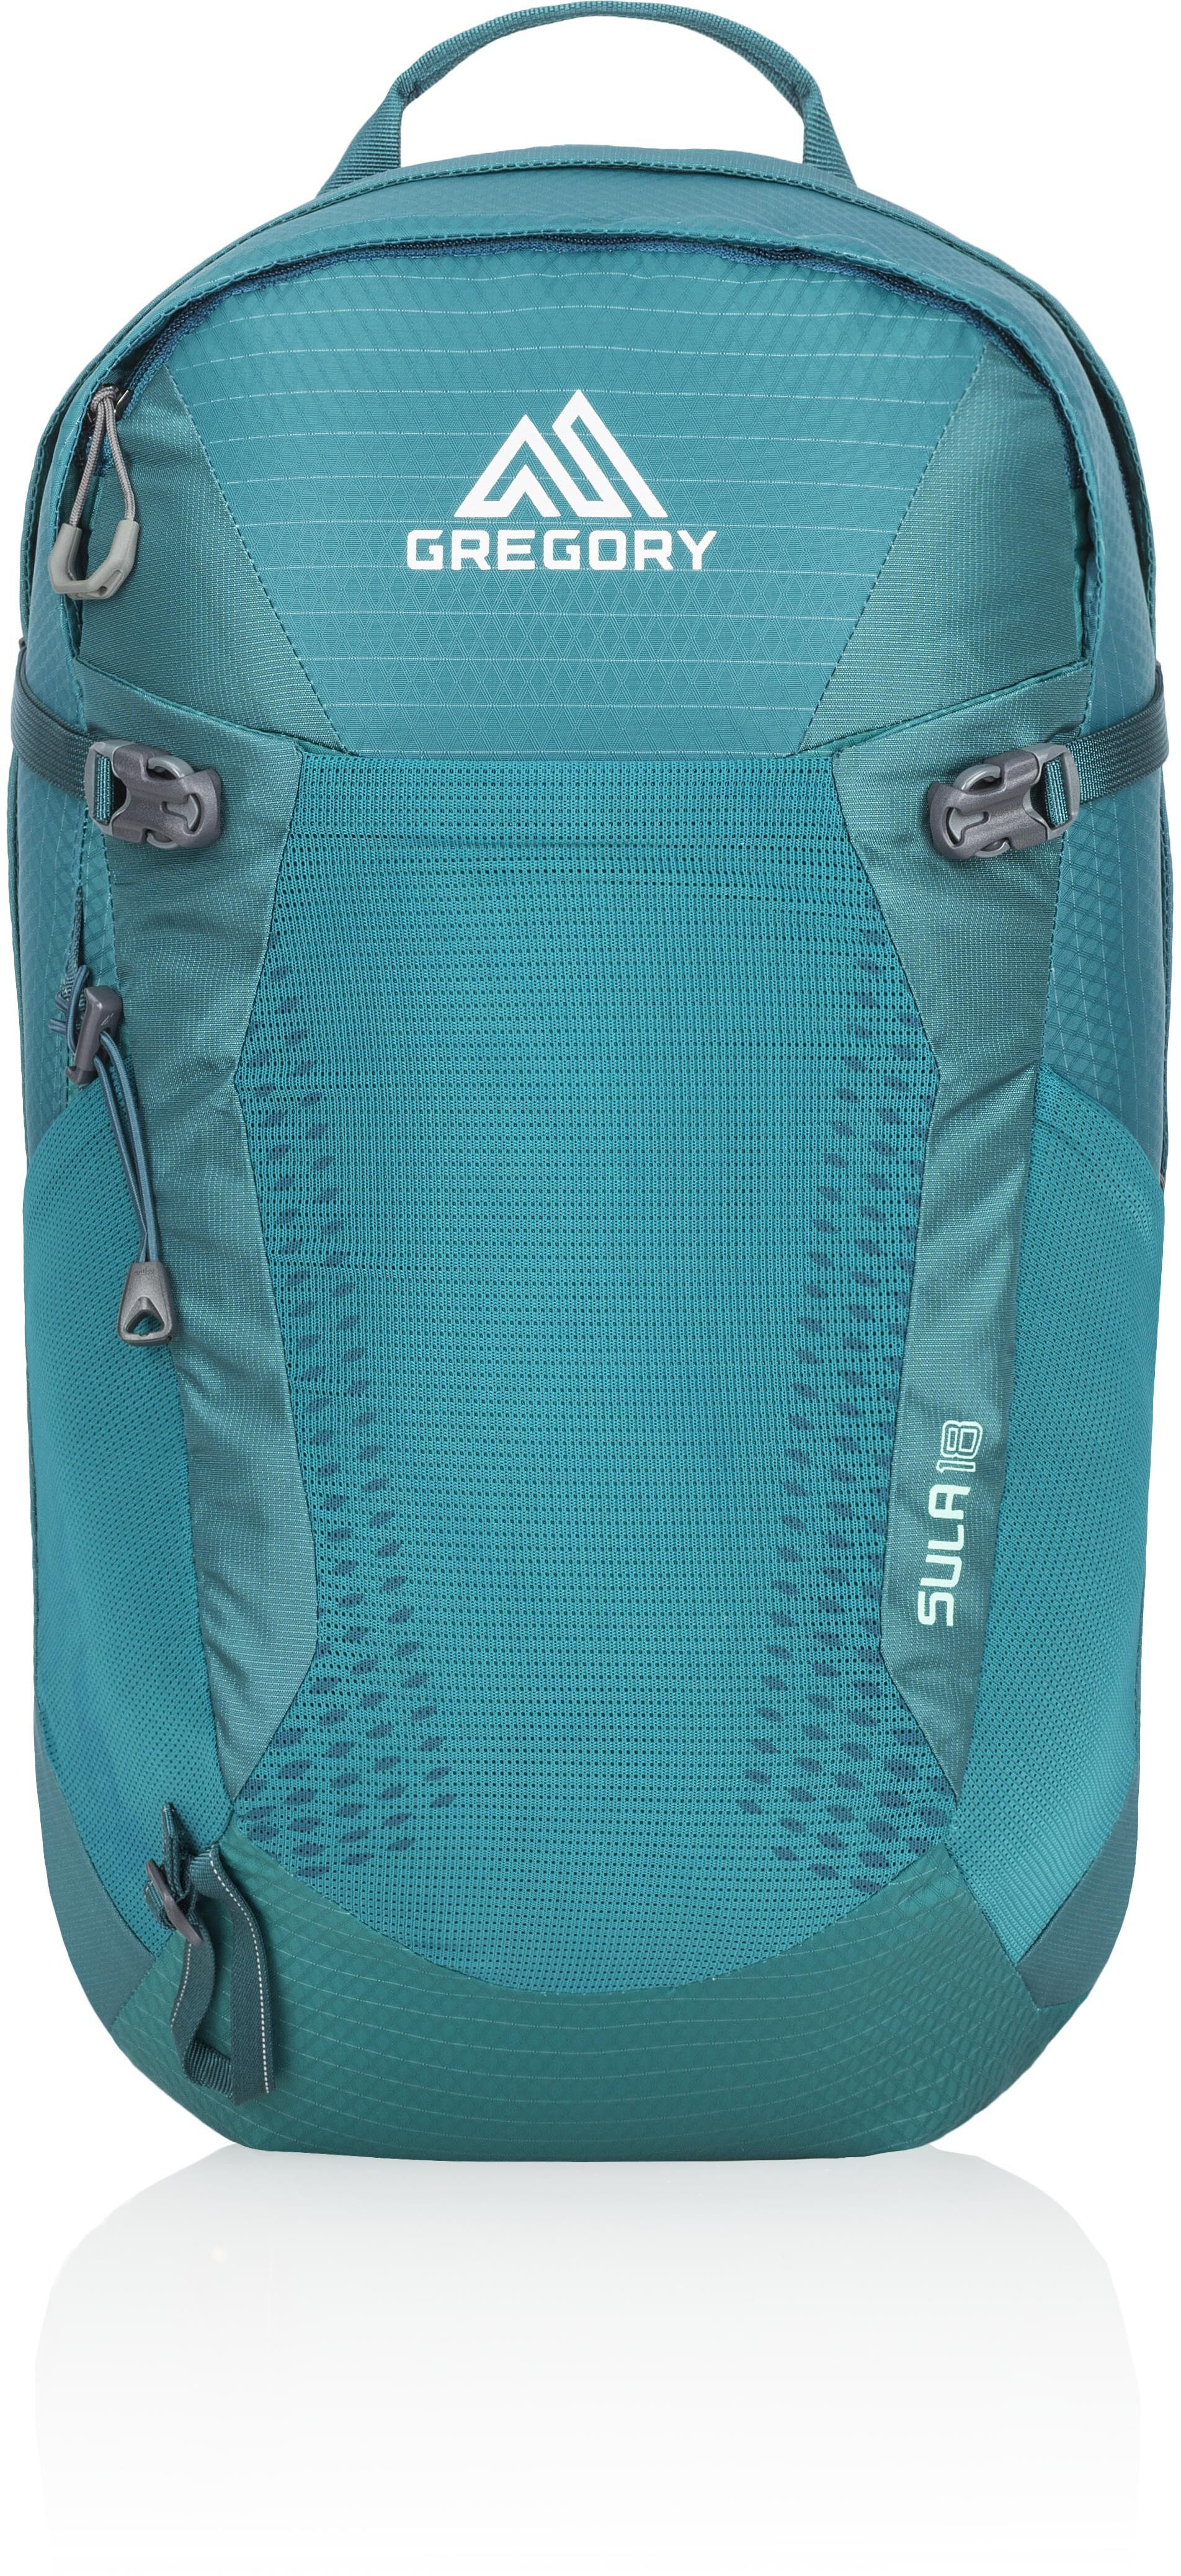 57d85067f059a Gregory Sula 18 Backpack Women mineral green